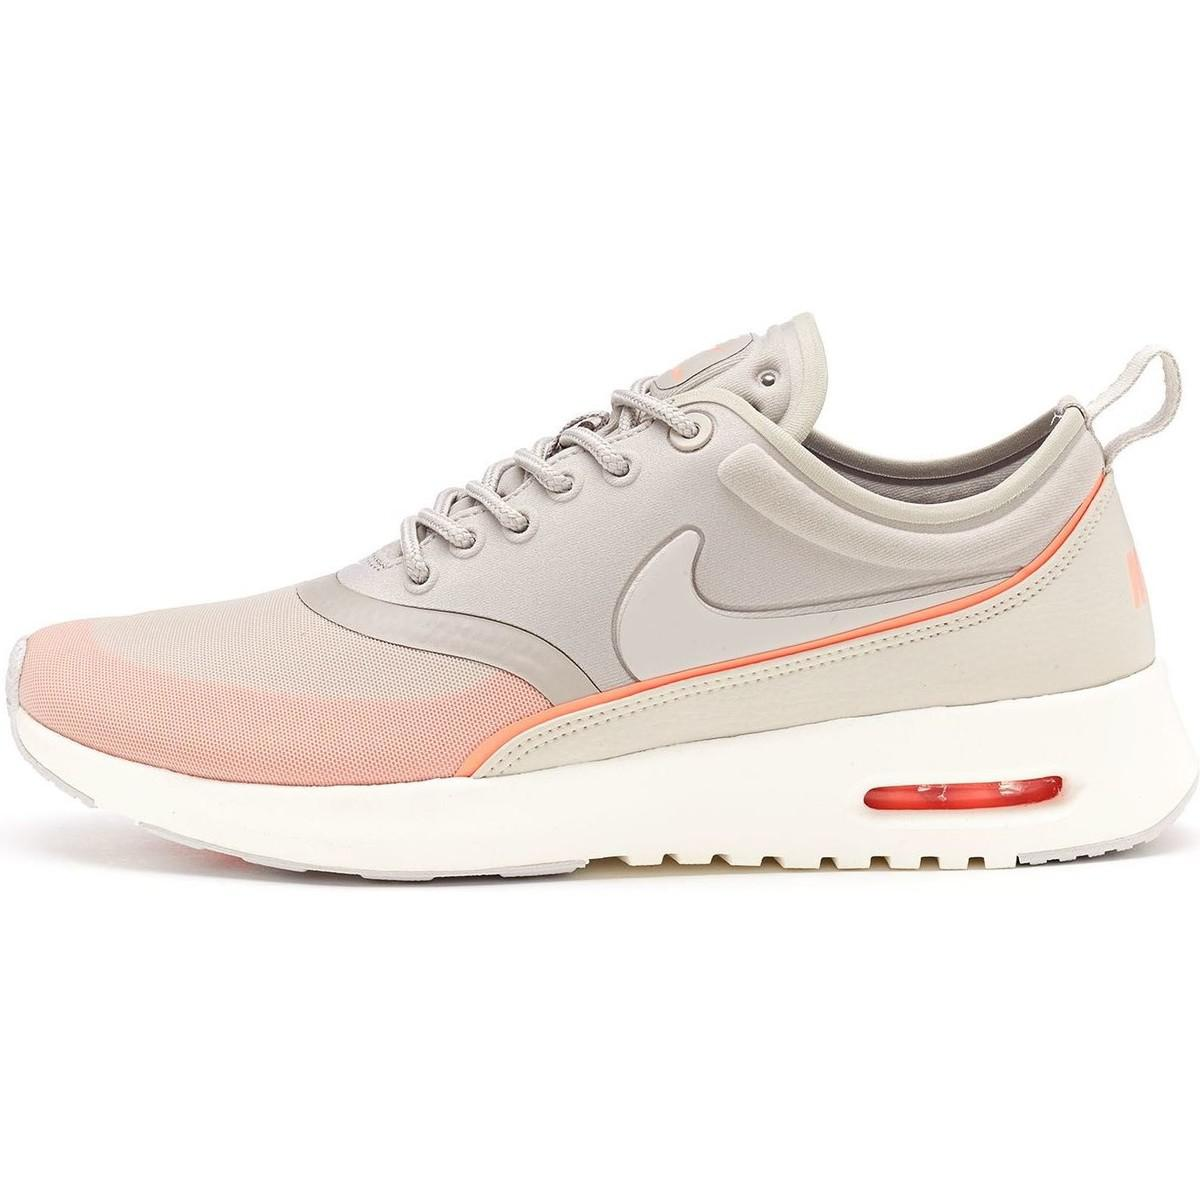 half price low price top quality Air Max Thea Ultra Women Trainers In Light Grey Atomic Pink 8 Women's Shoes  (trainers) In Pink